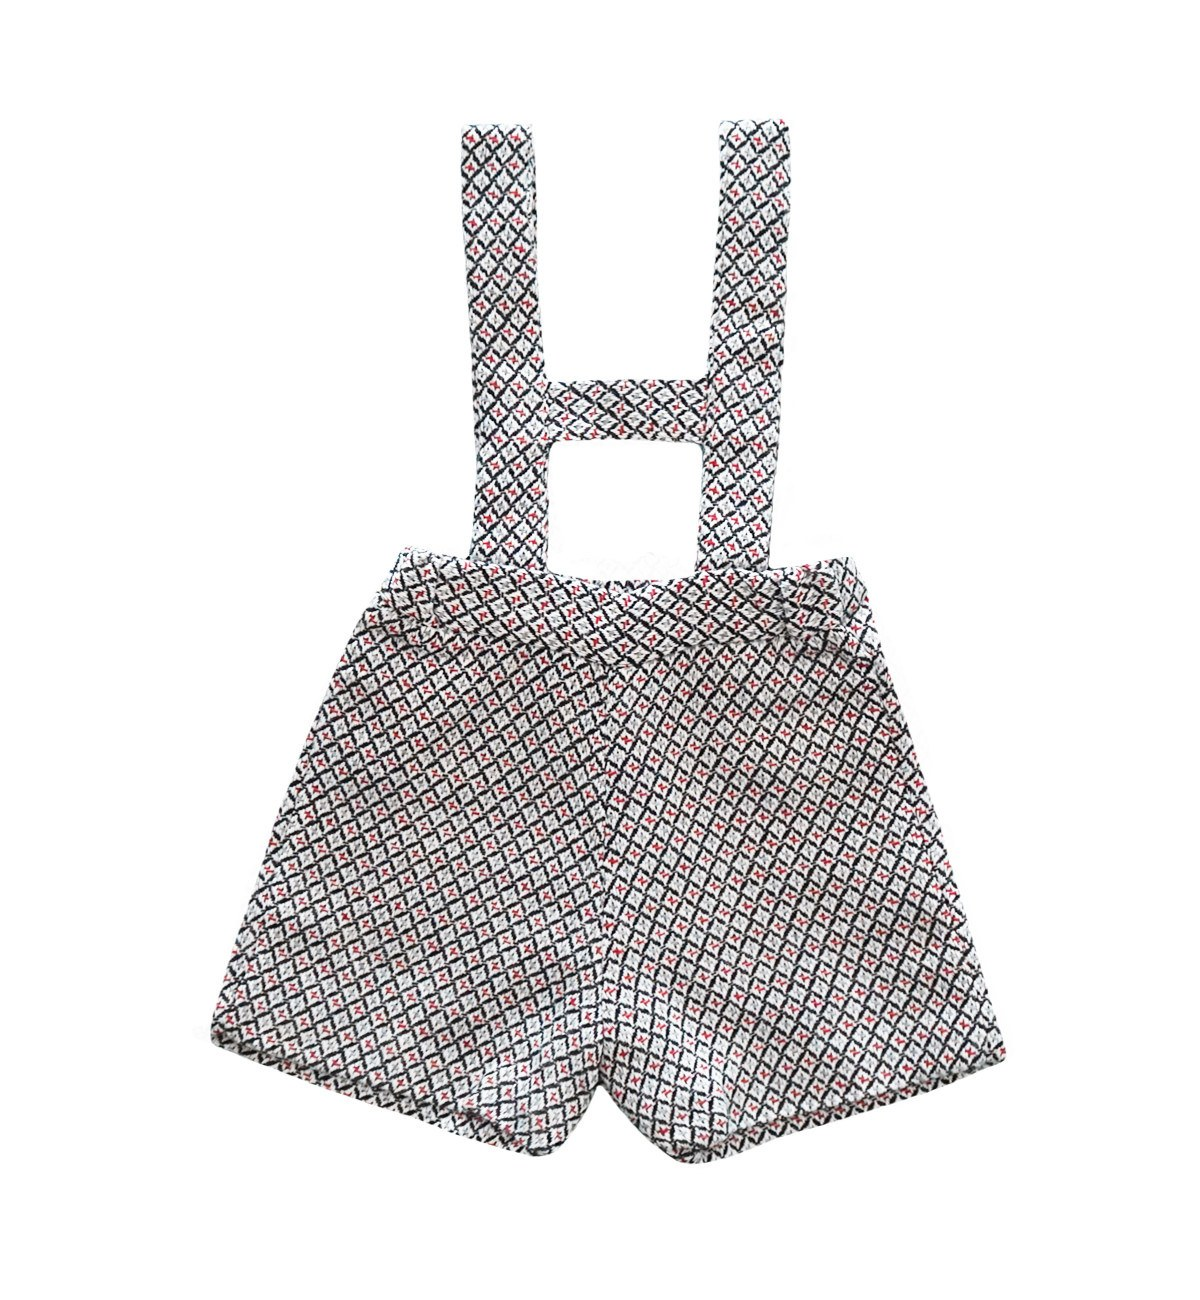 Spanish baby clothes | baby dungaree | Woollen dungaree |babymaC  - 1